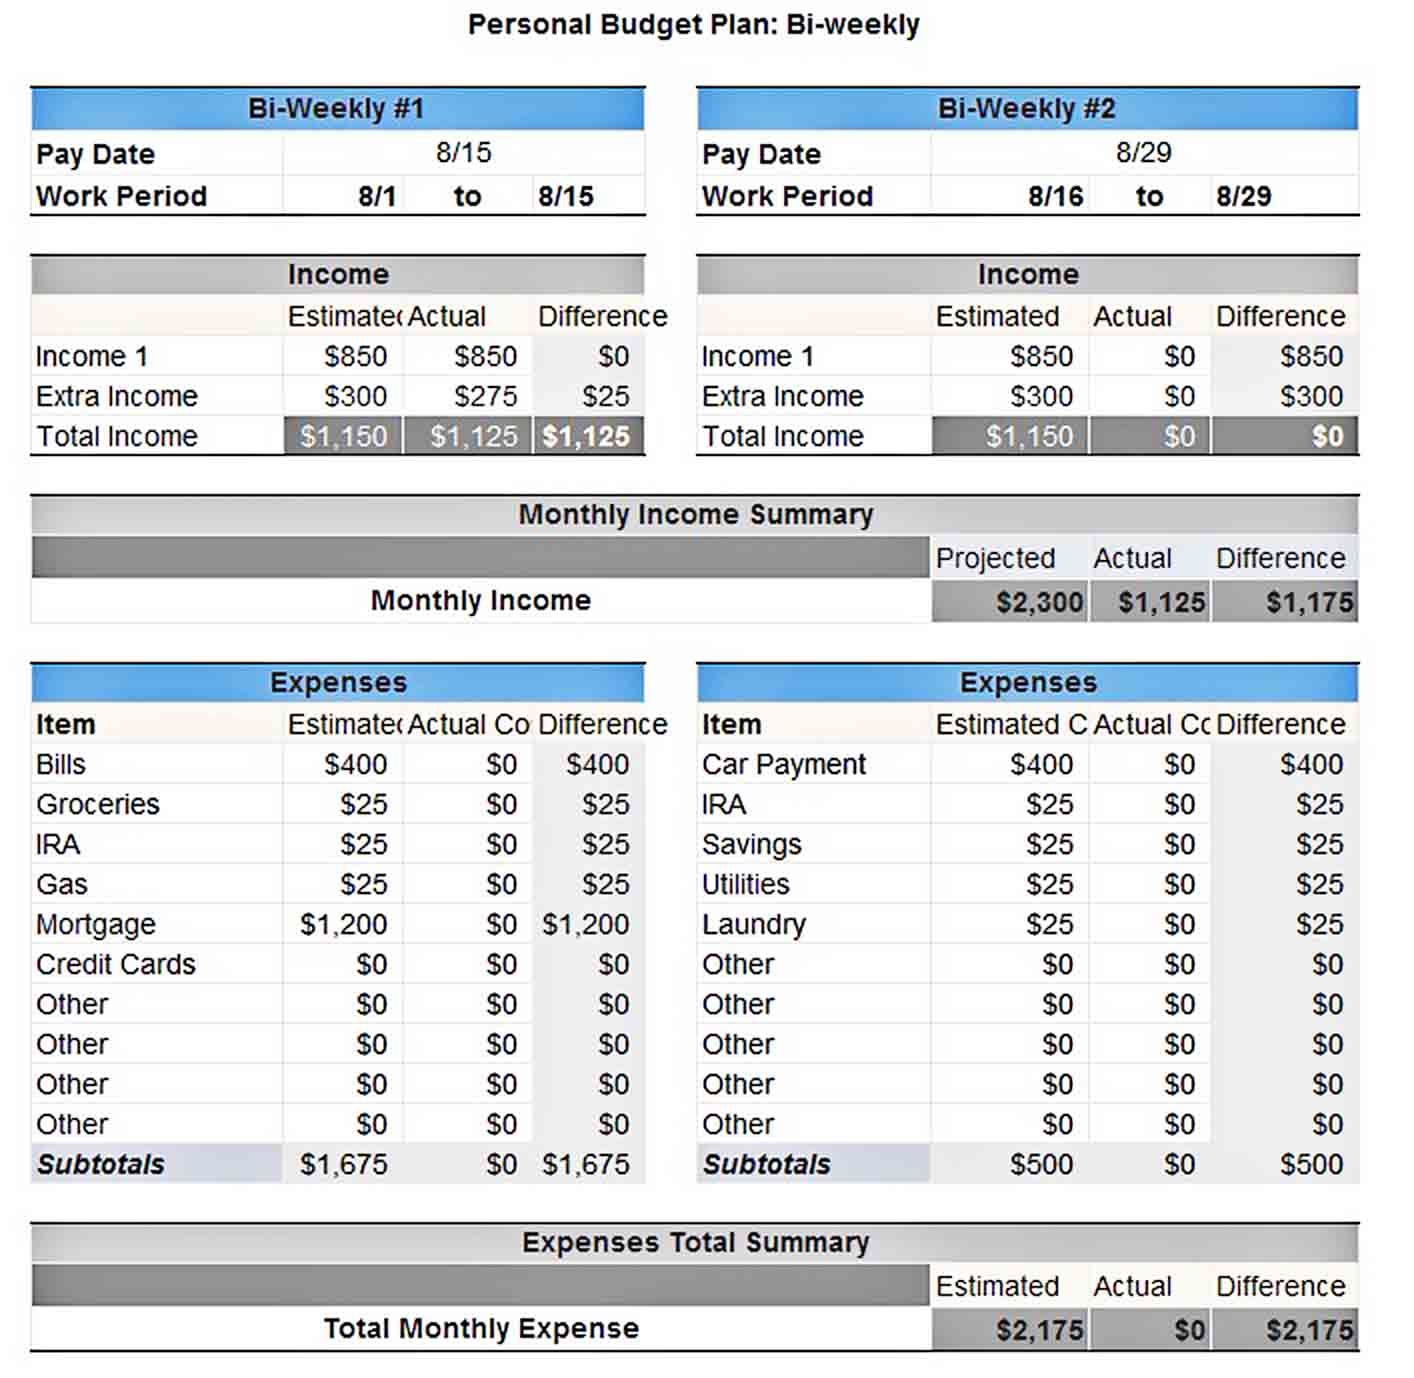 bi weekly personal budget template excel sample